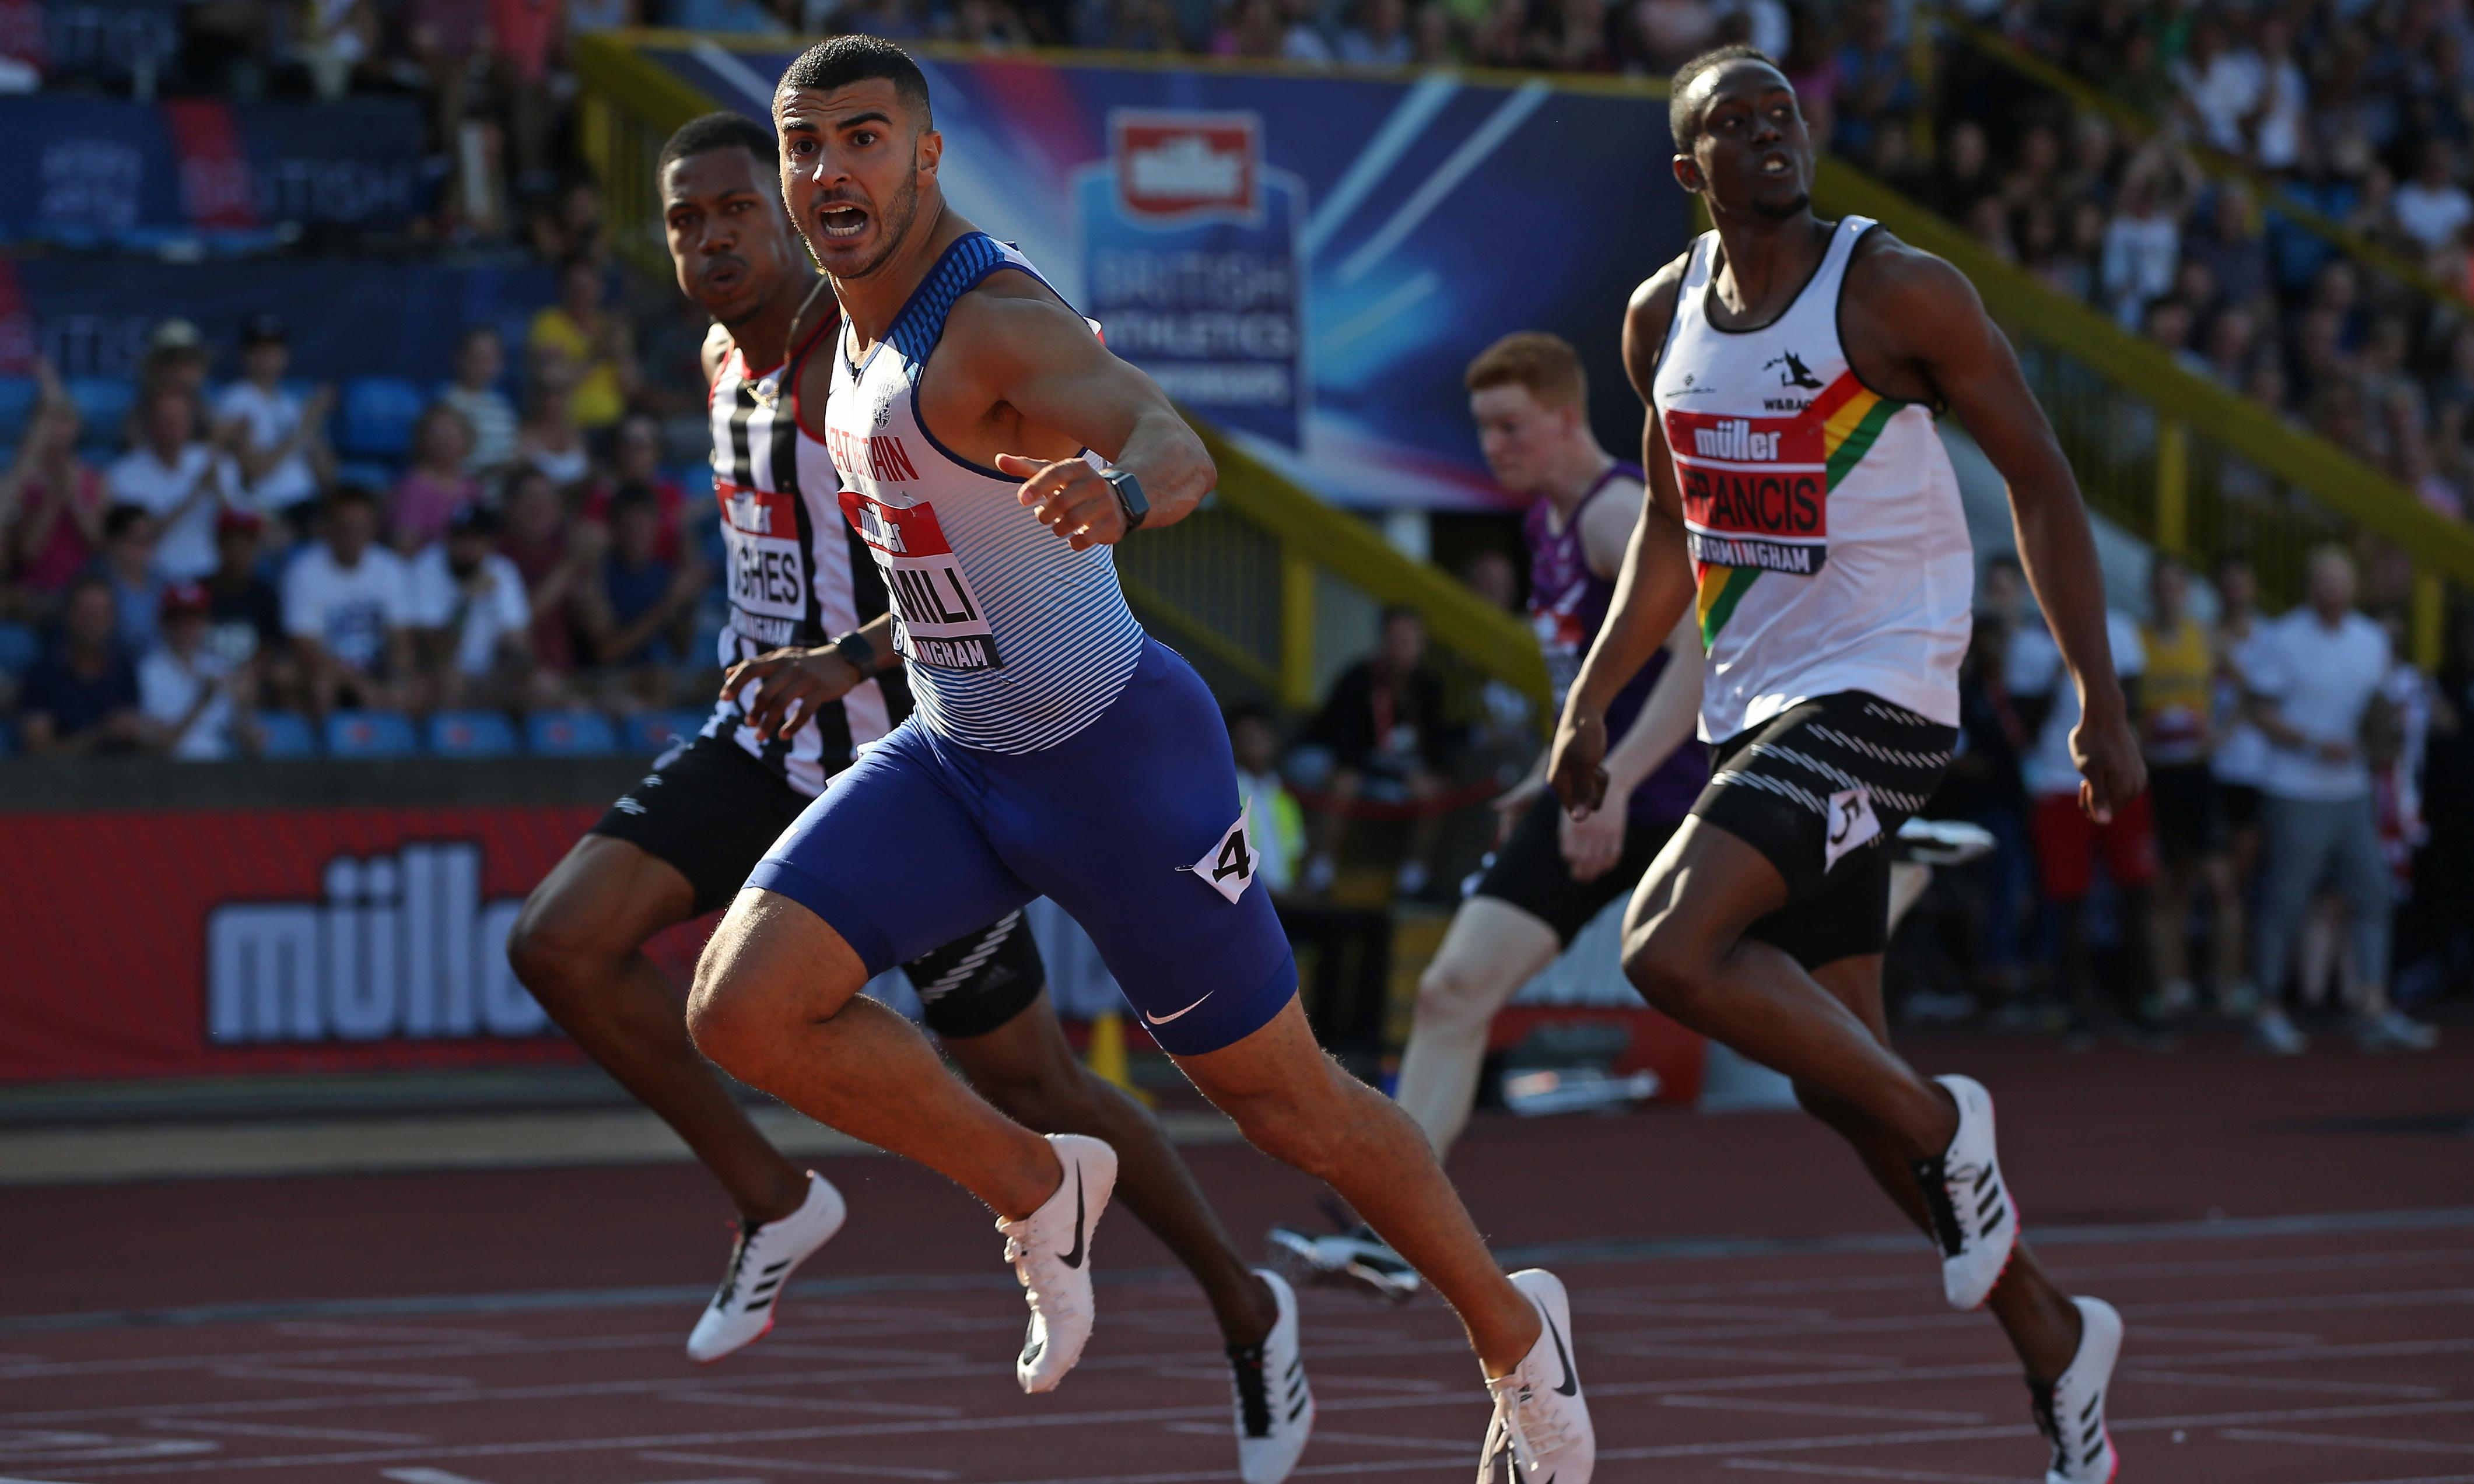 Adam Gemili takes aim at doubters after record-breaking 200m win